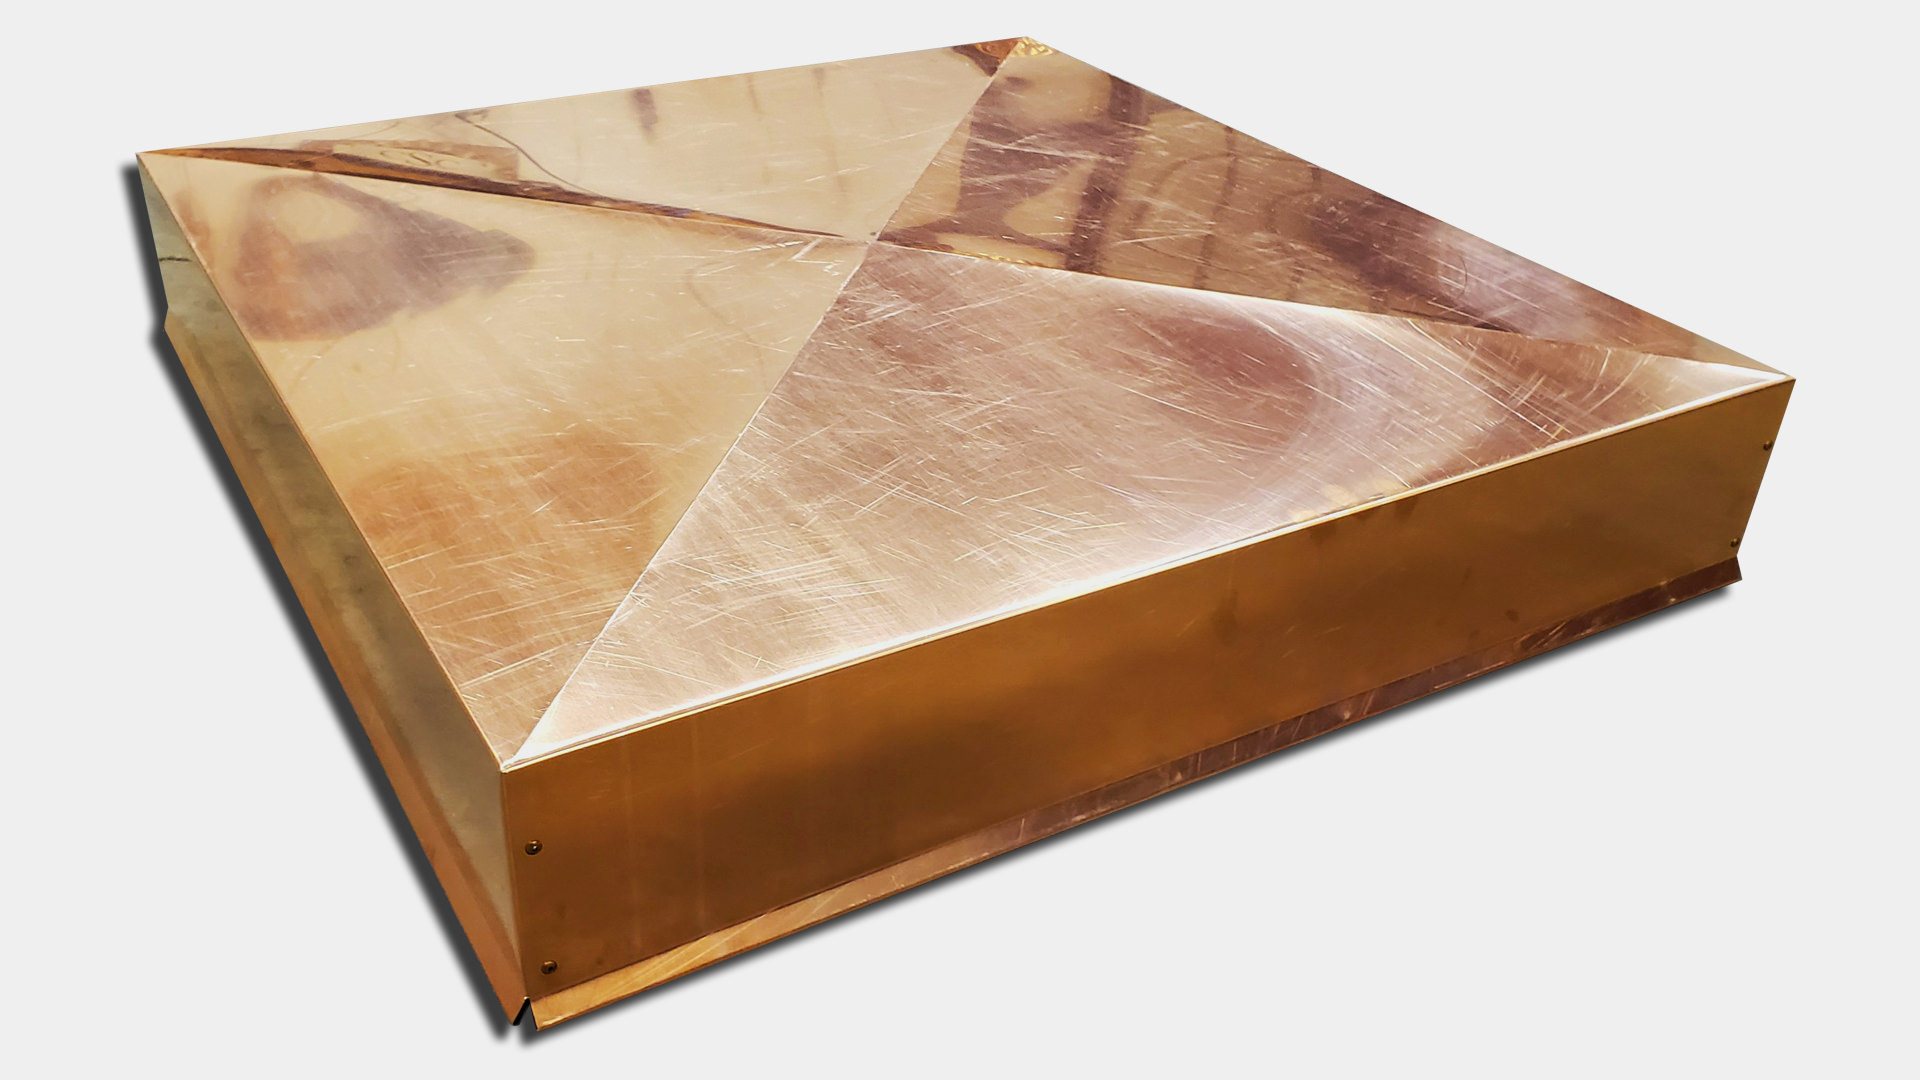 CC200 - Copper economy solid chimney chase cover with no holes